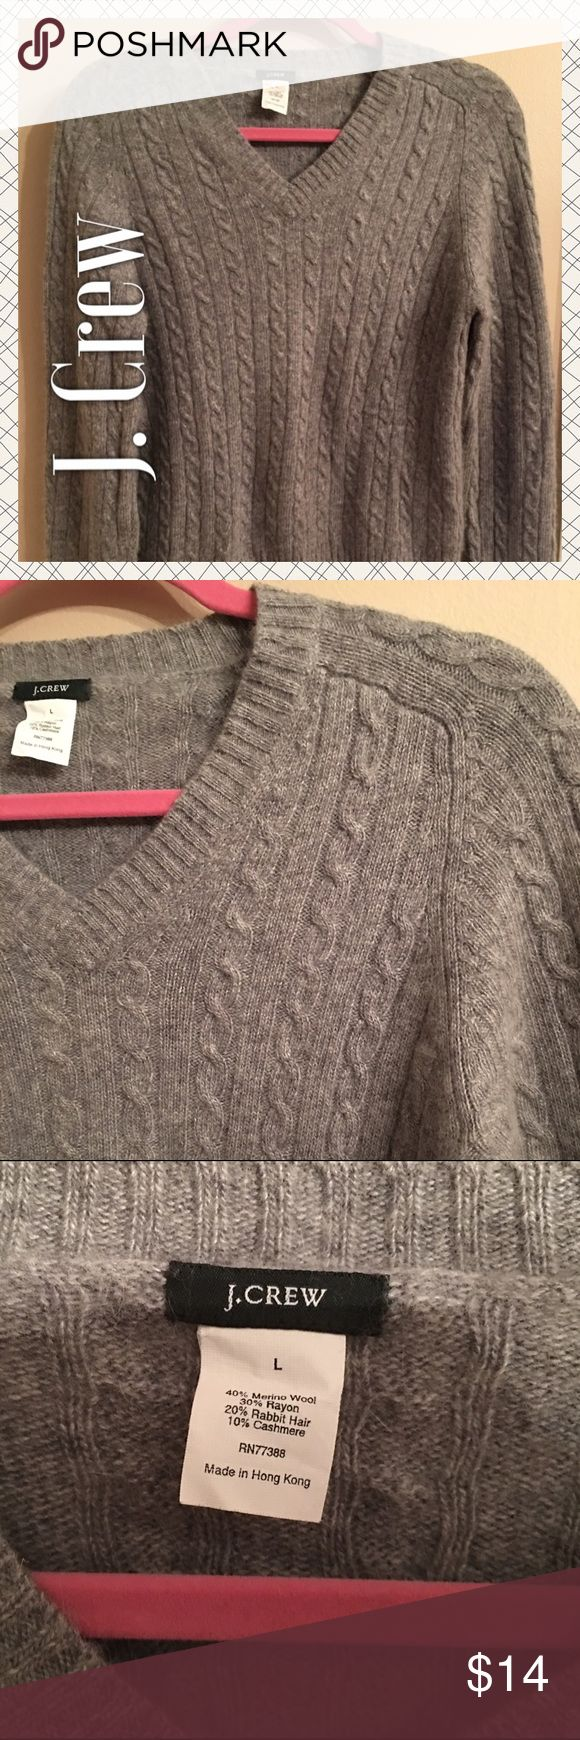 J. Crew Wool/Cashmere Cable Knit Sweater J. Crew Wool/Cashmere Cable Knit Sweater. Well loved with very minor pilling. Fit is between medium and large. Brownish Gray. J. Crew Sweaters